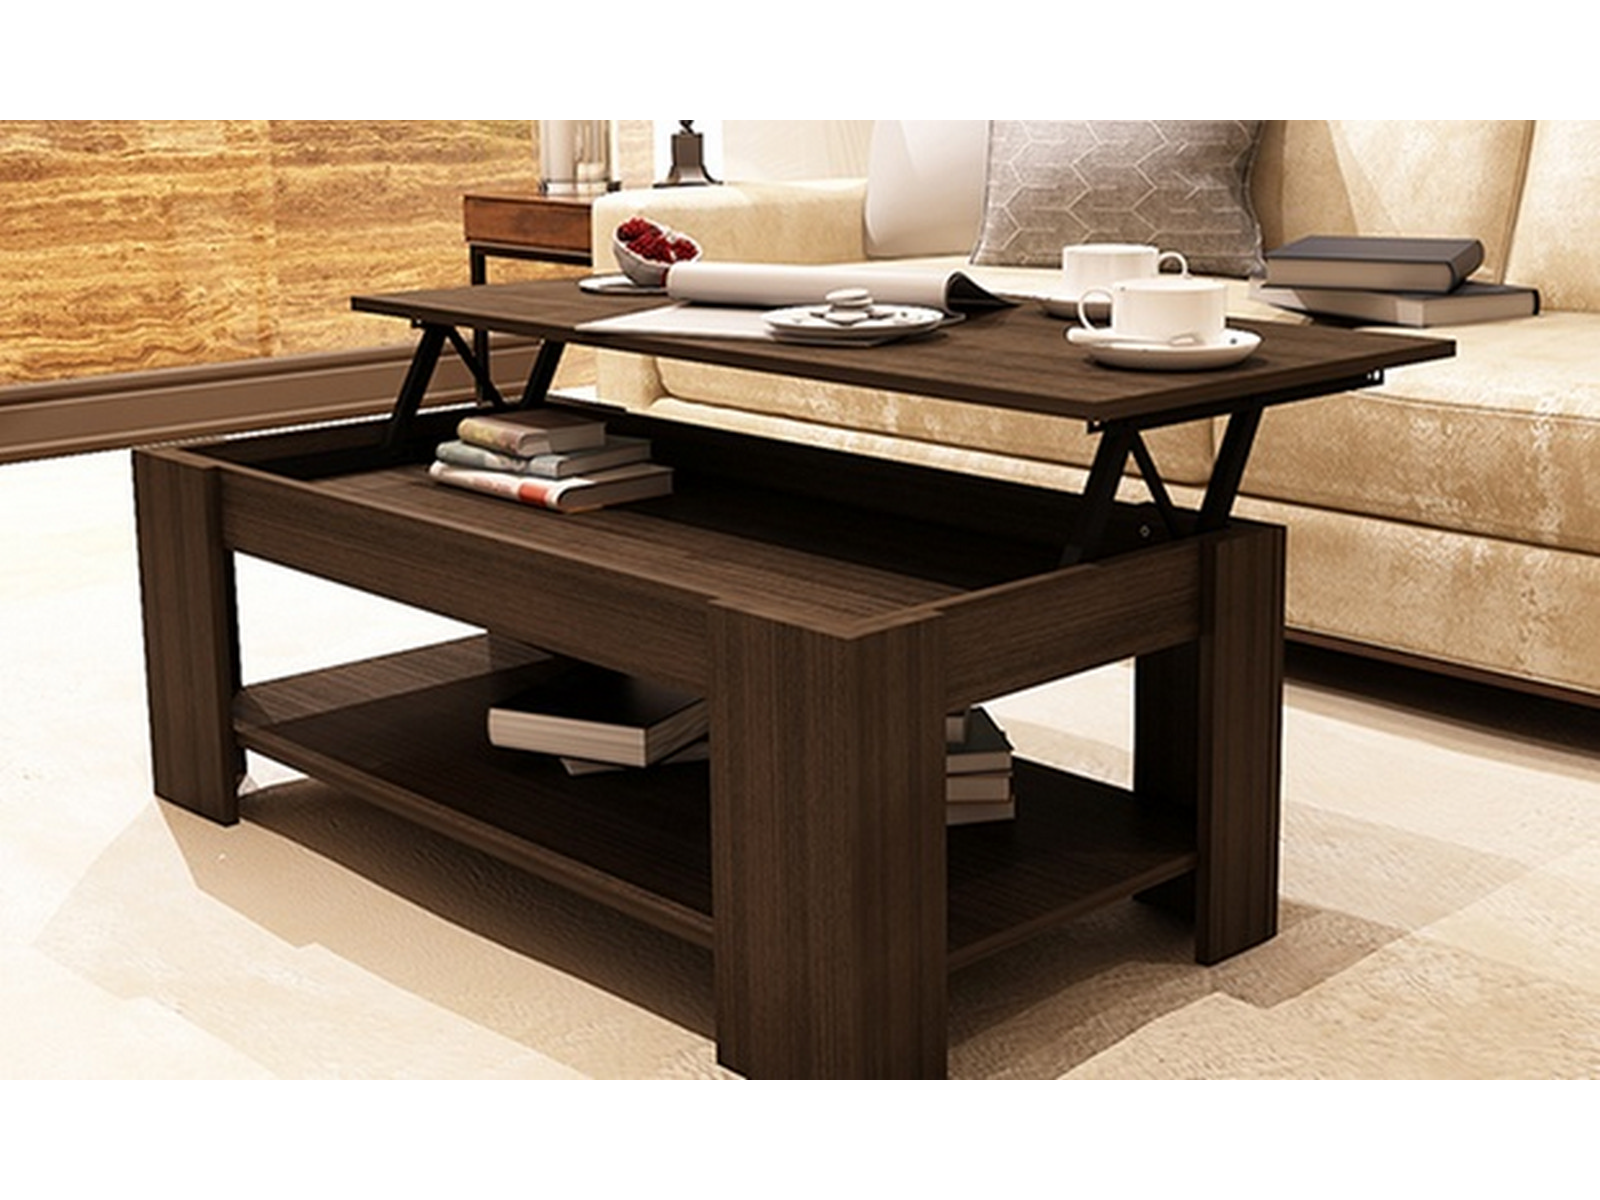 New caspian espresso lift up top coffee table with storage shelf ebay Coffee table with shelf